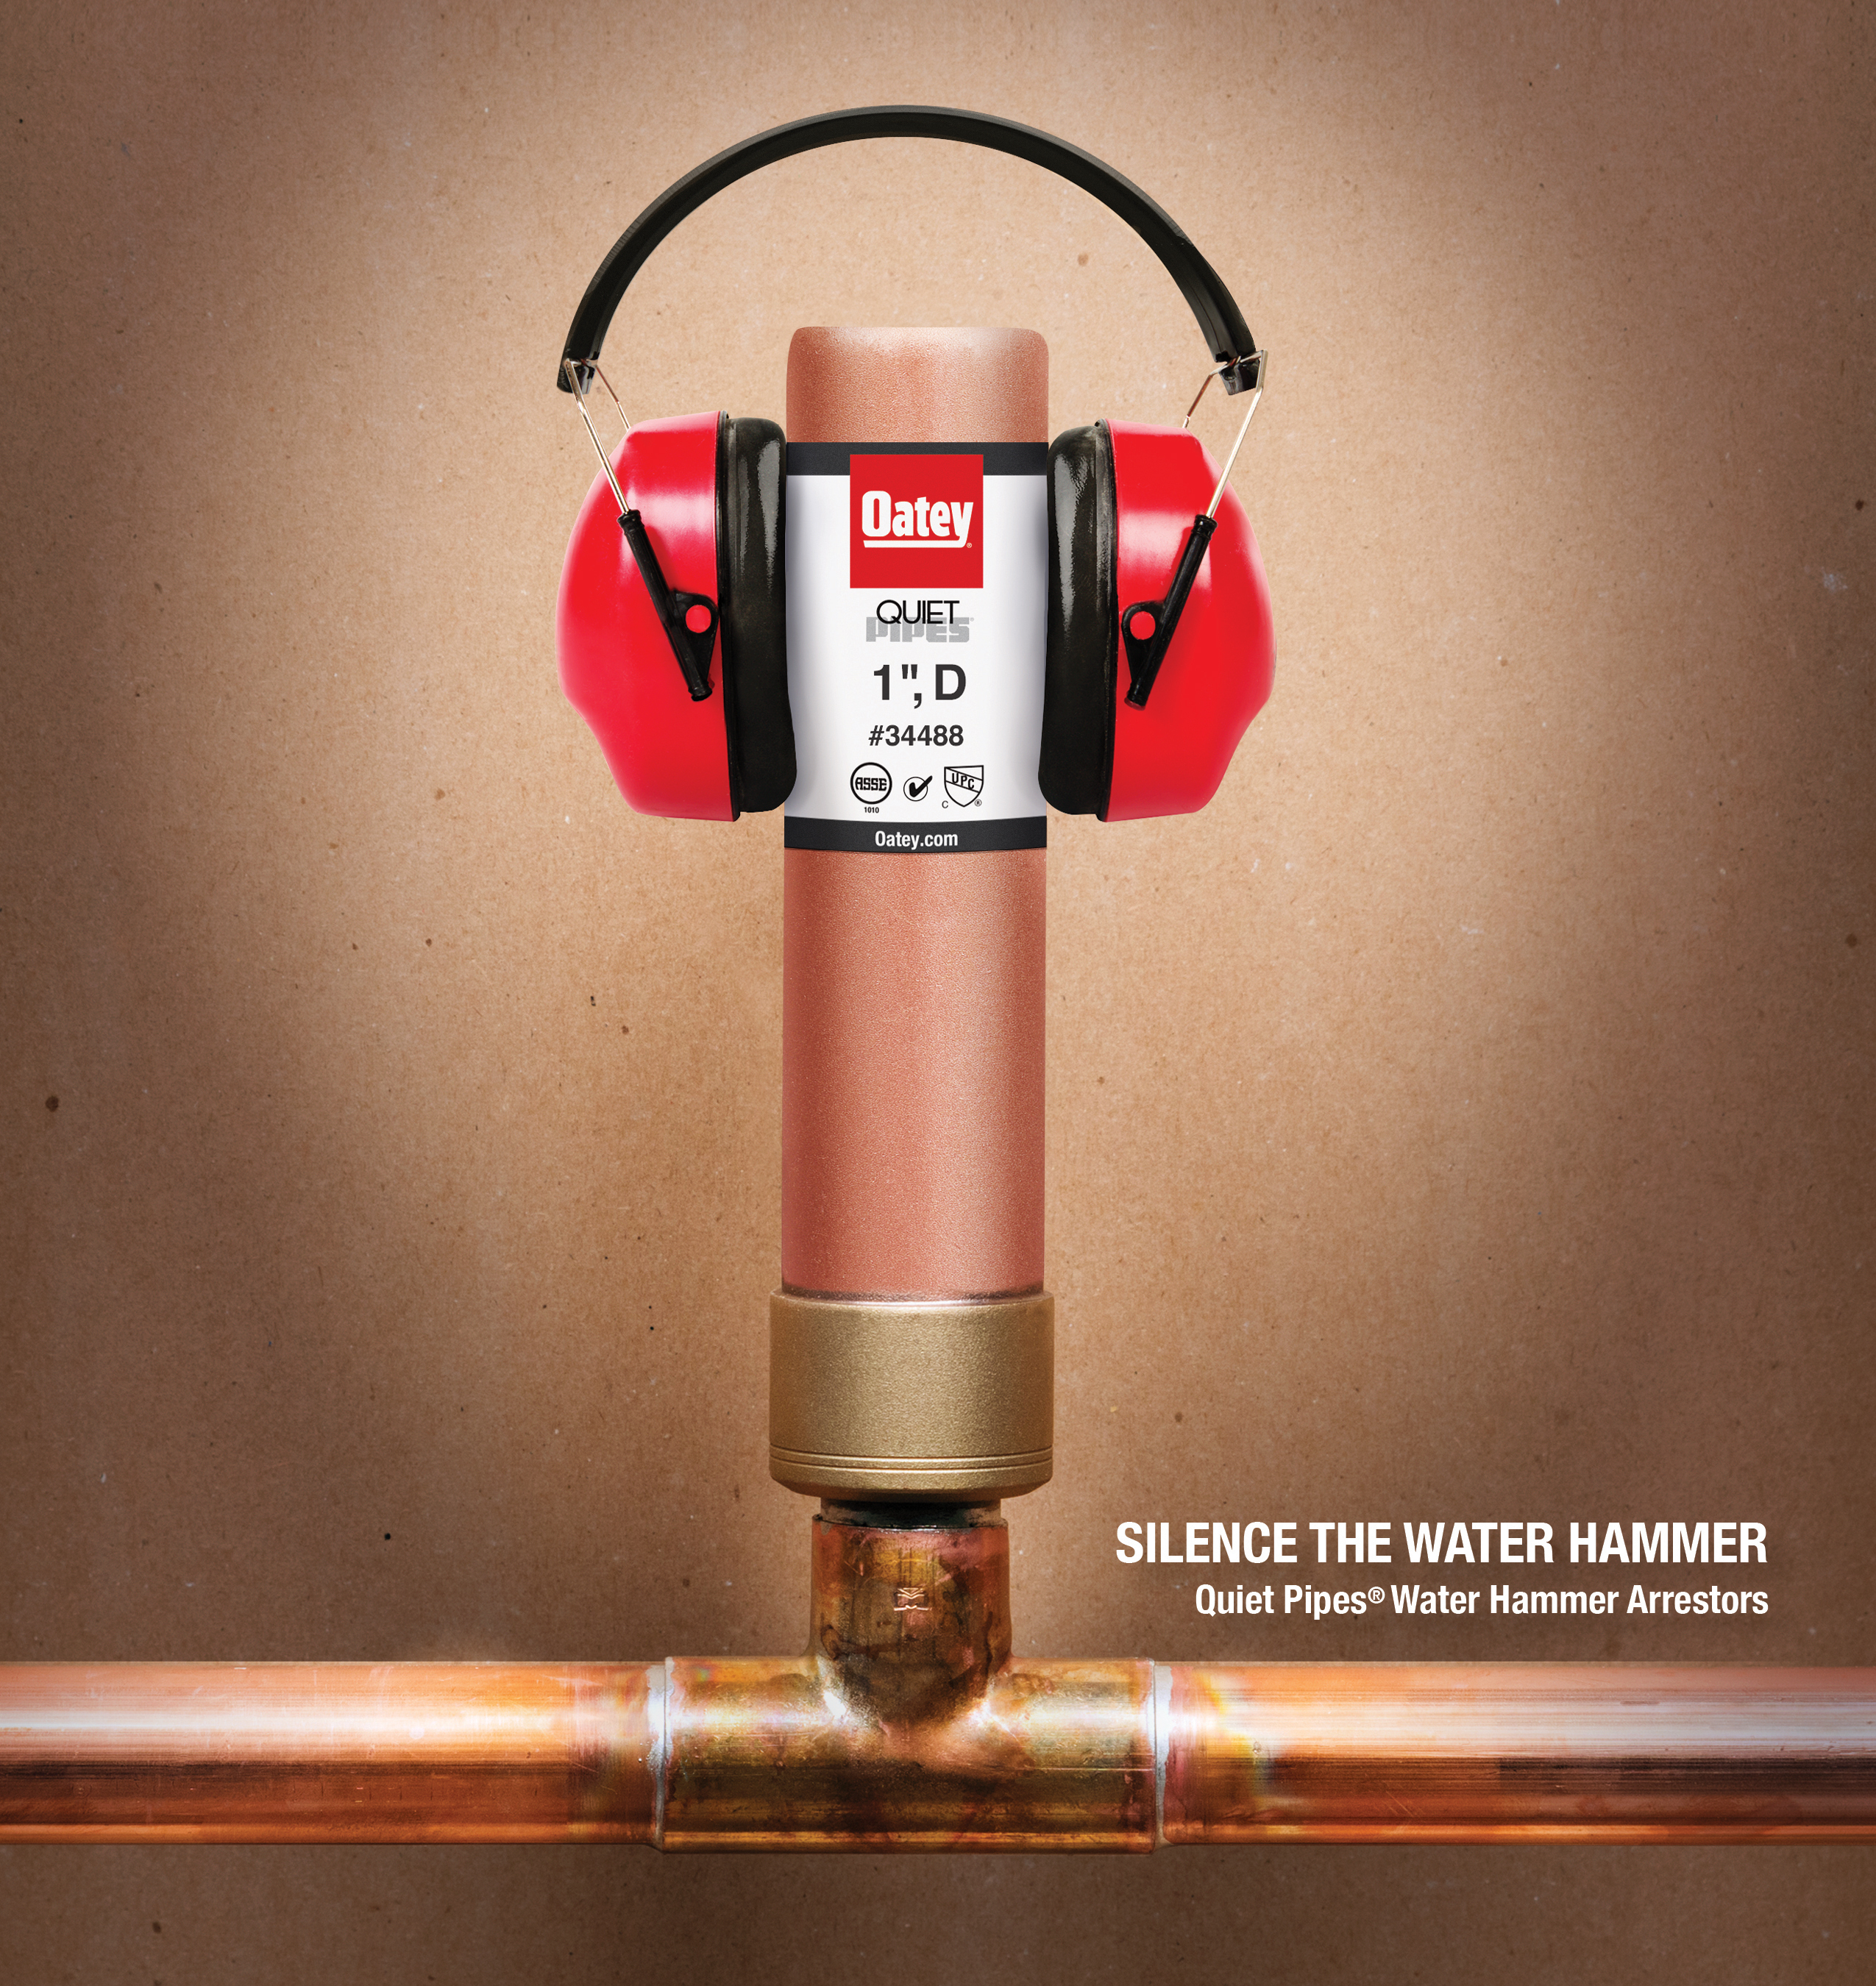 Oatey® Quiet Pipes® - Silencing the Water Hammer | Business Wire